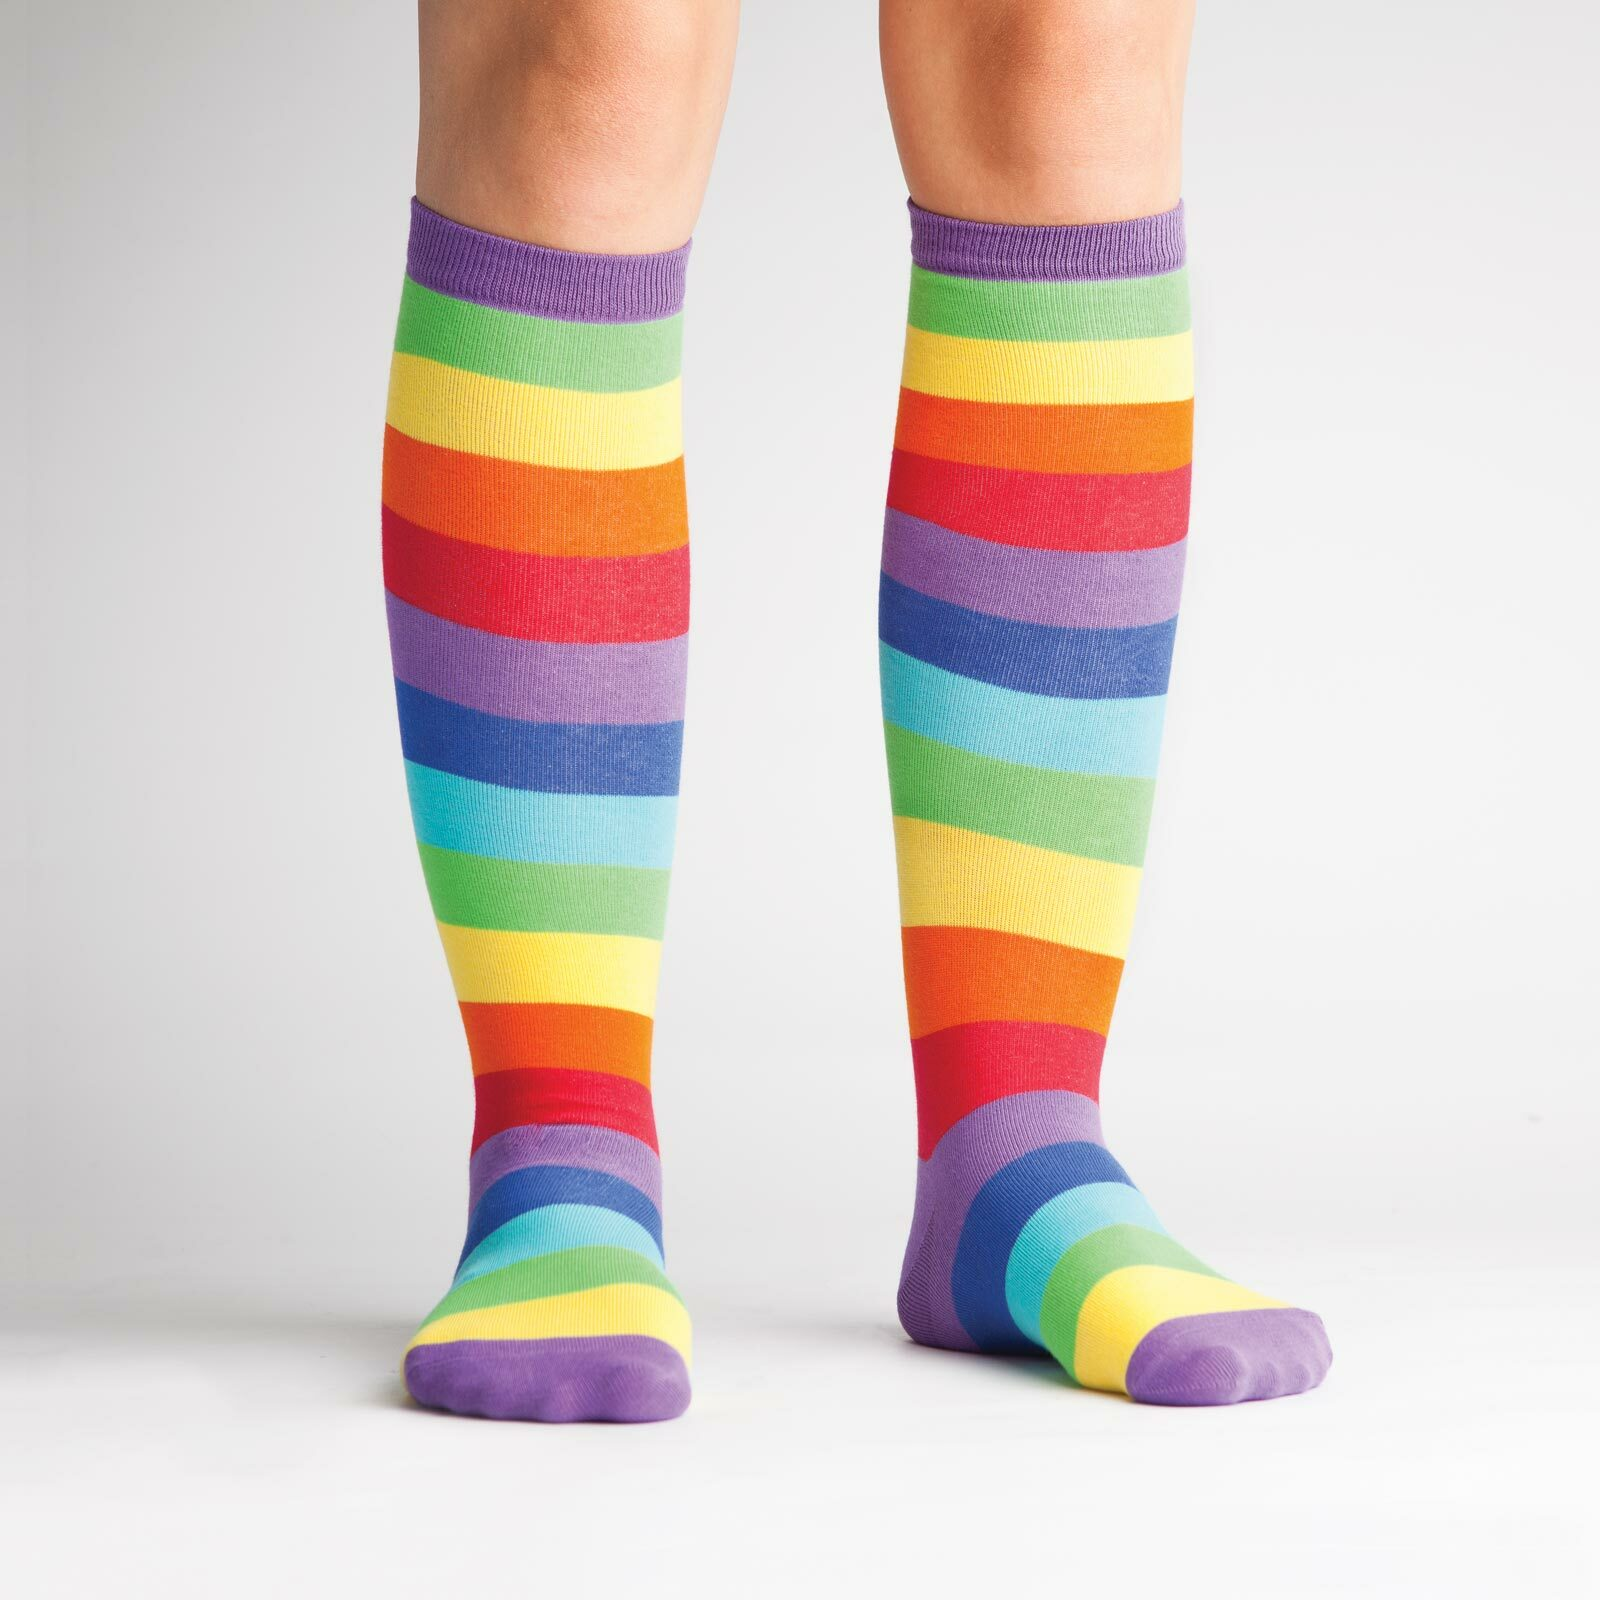 model wearing Super Juicy - Wide Calf - Rainbow Knee High Socks - Unisex